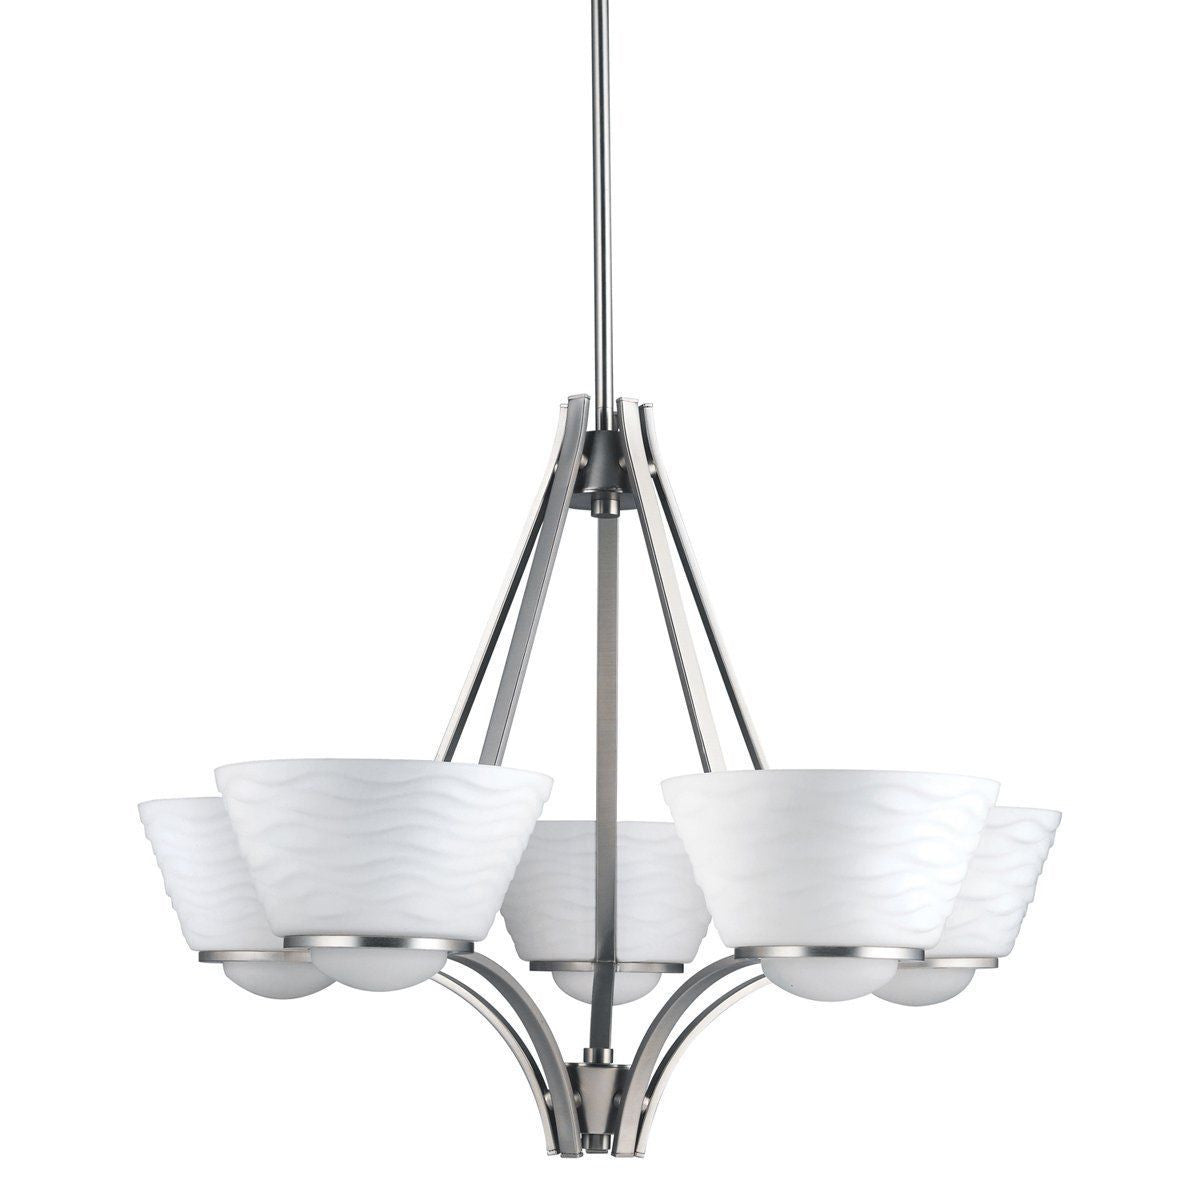 Aztec by Kichler Lighting 34910 Five Light Daphne Collection ...